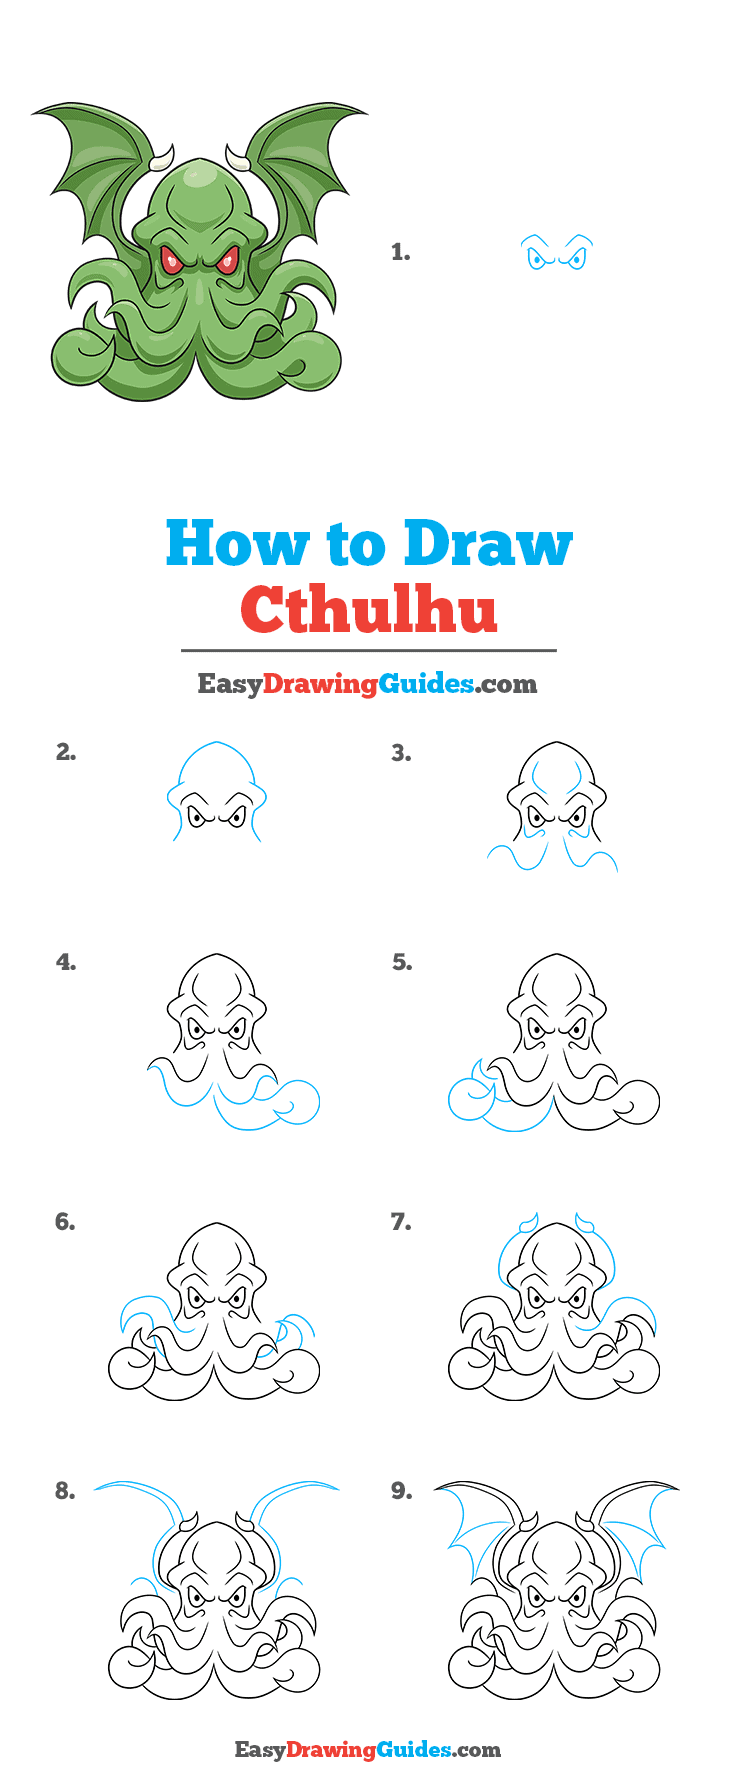 How to Draw Cthulhu